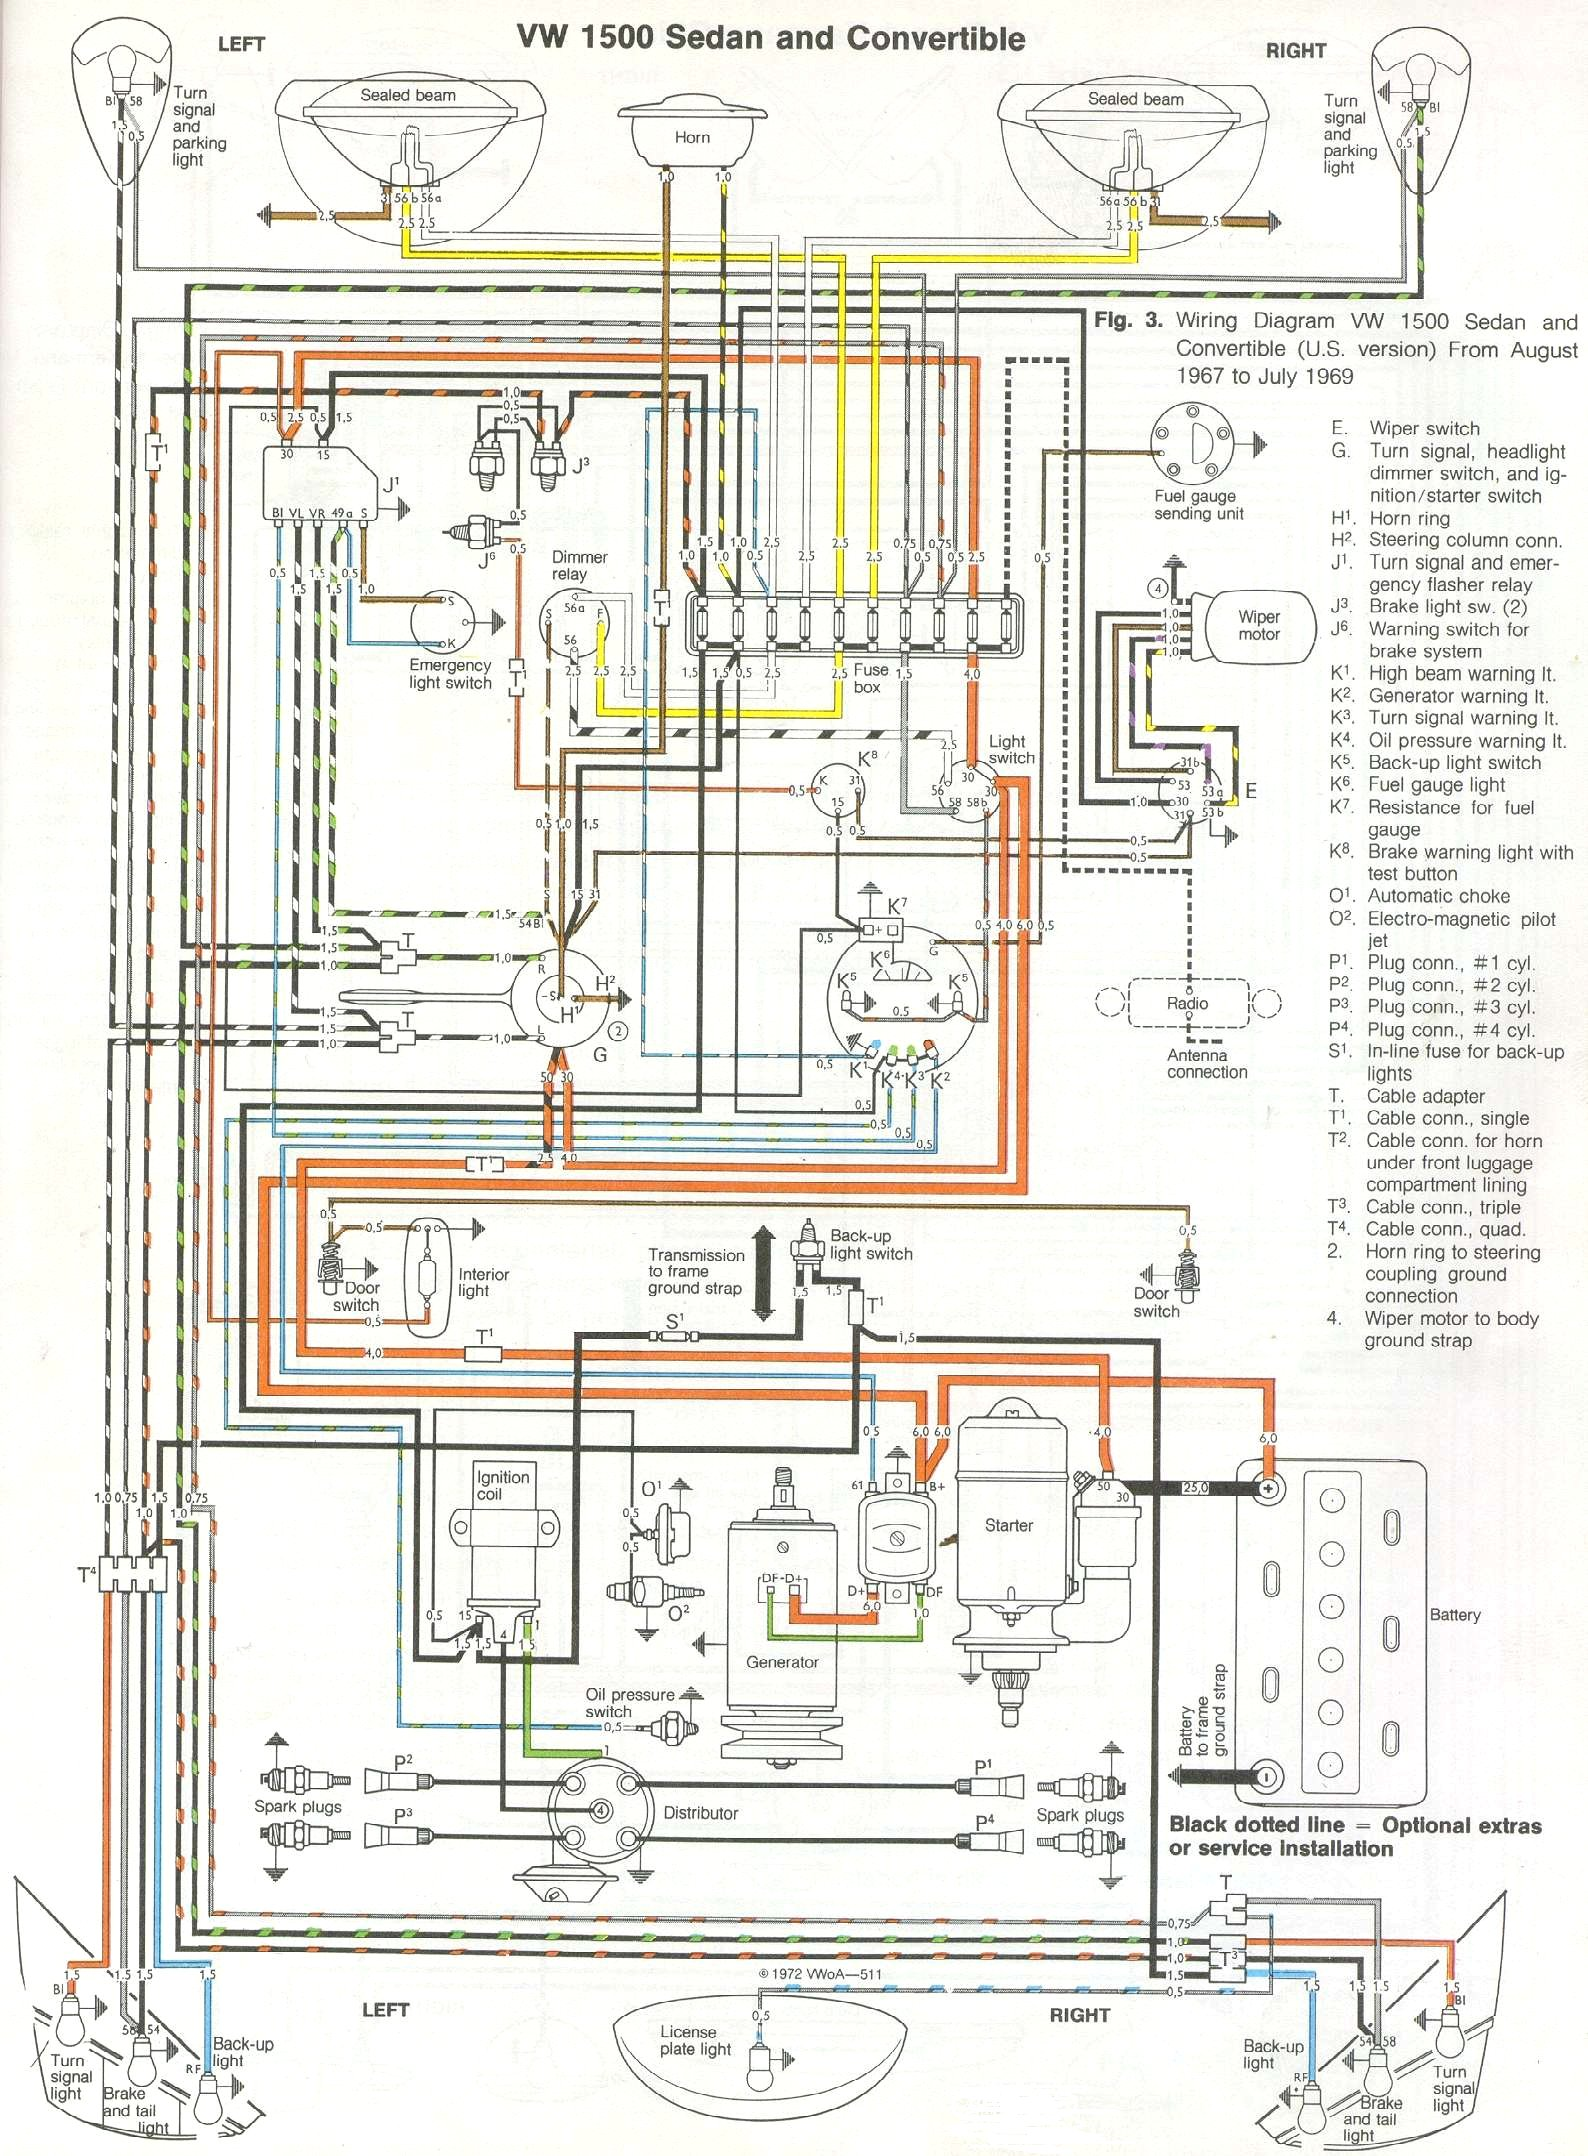 1969-71 Beetle Wiring Diagram